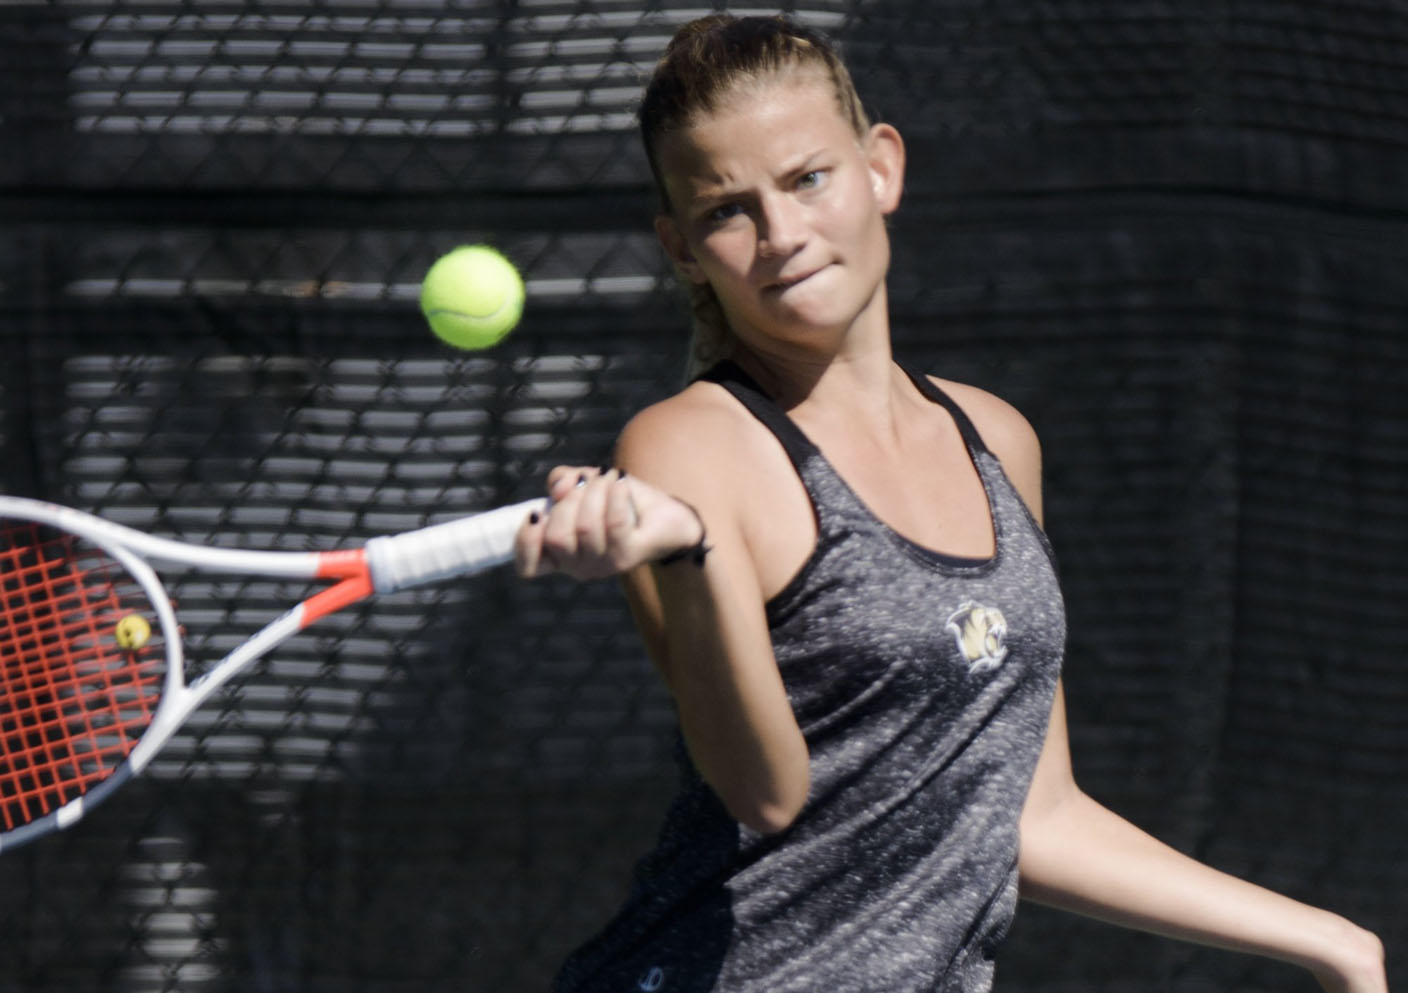 PREP TENNIS: Bentonville's Canigova upsets defending state champion to win 6A-West singles title ...